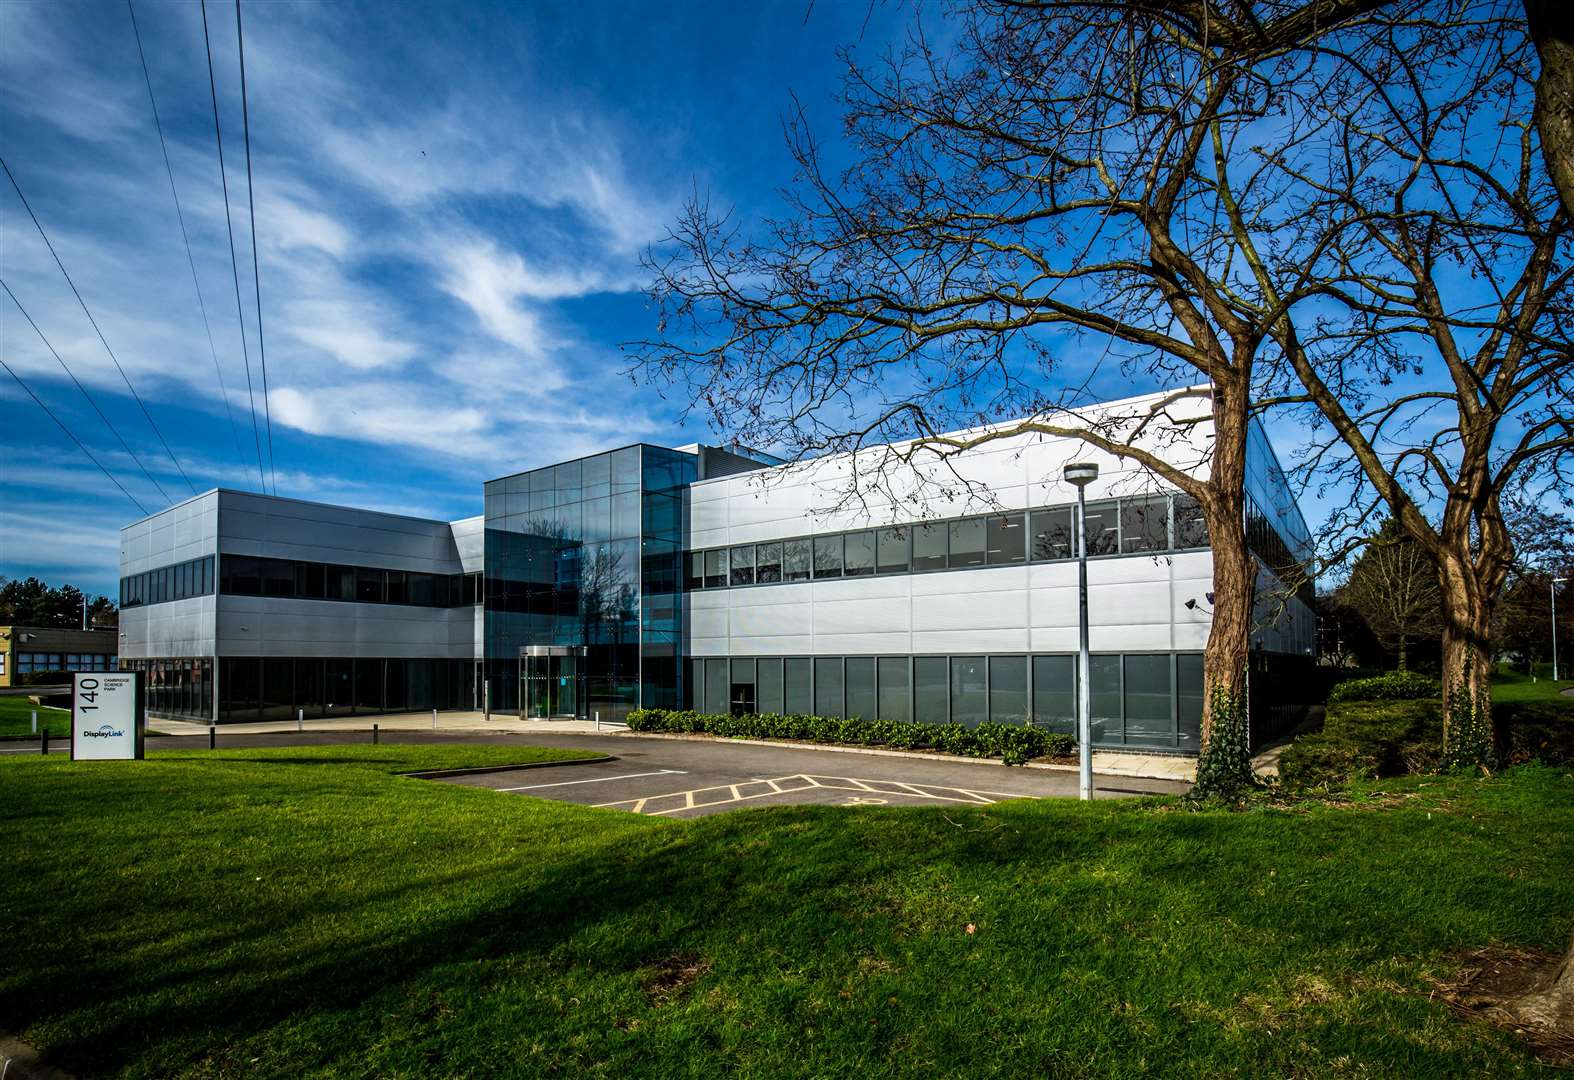 Council invests £13m to buy Cambridge Science Park building rented by DisplayLink